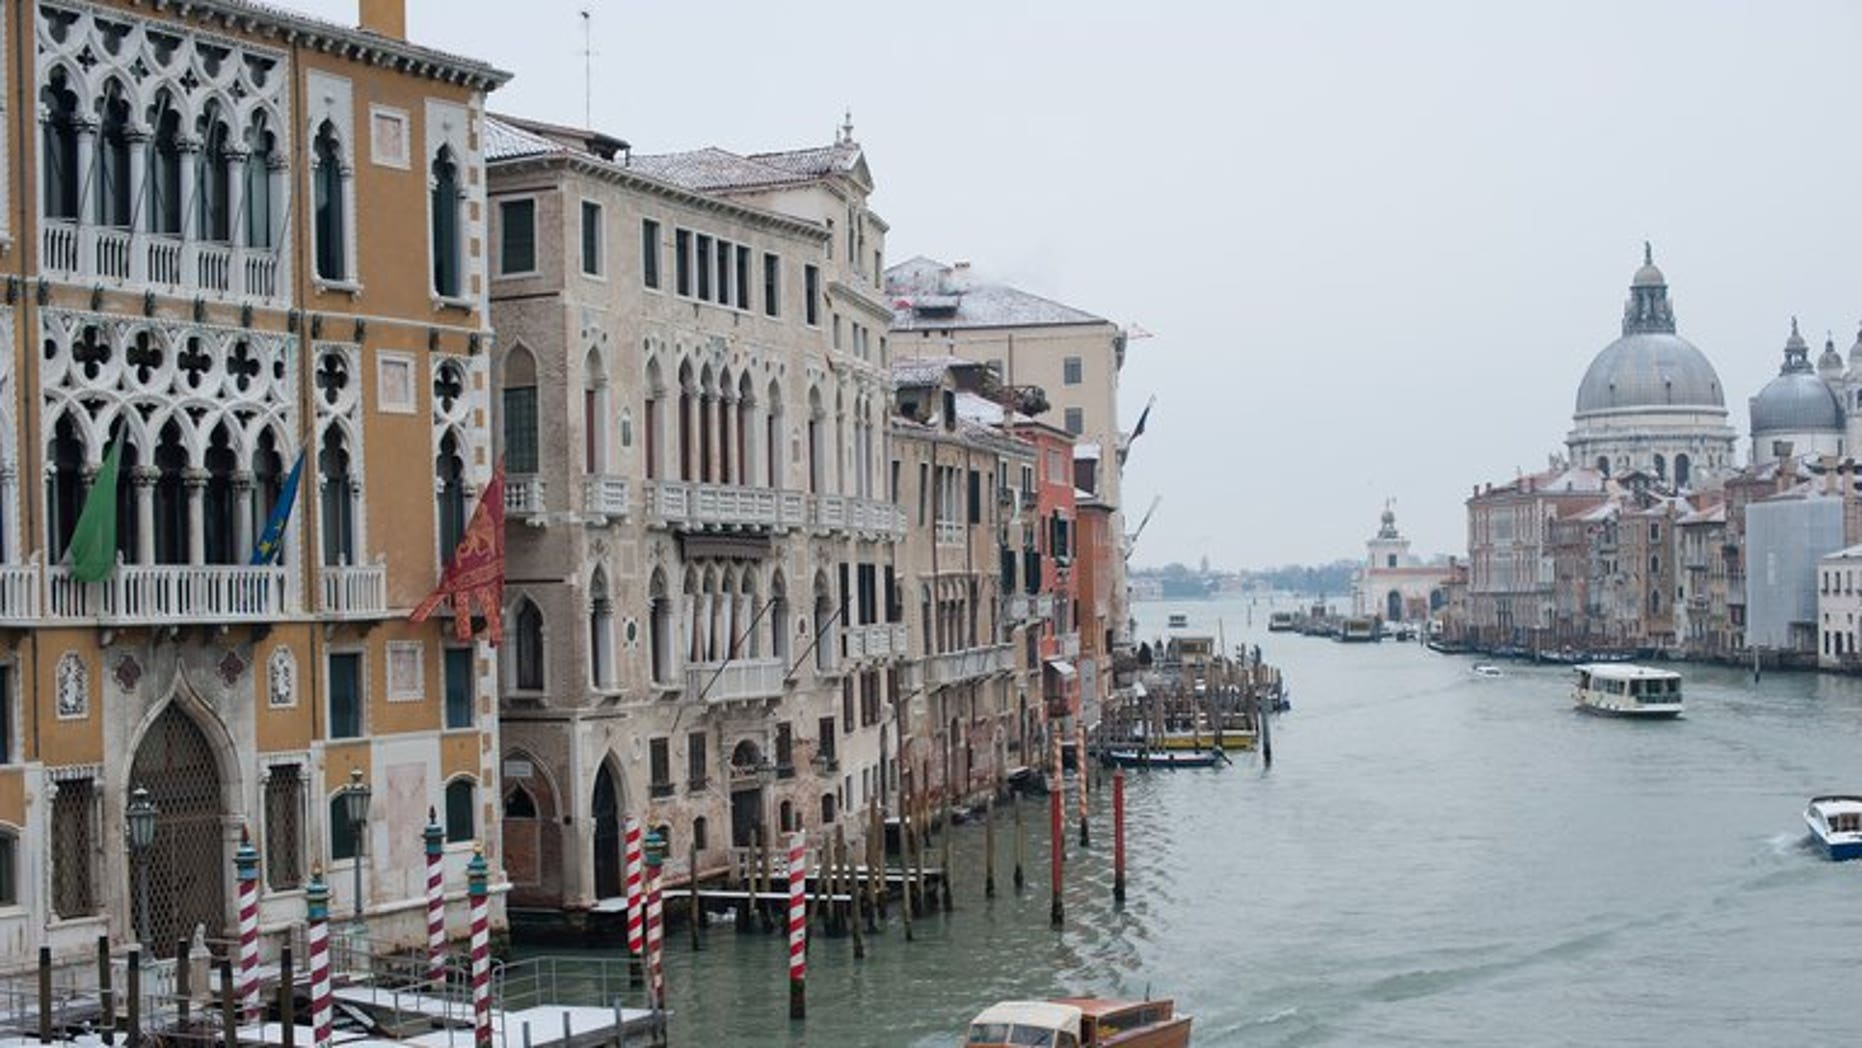 A picture taken on February 12, 2012 shows boats sailing on the Grand Canal in Venice. A gondola and a vaporetto waterbus collided Saturday on Venice's Grand Canal, killing a German tourist and badly injuring a young girl, Italy's Ansa news agency reported.